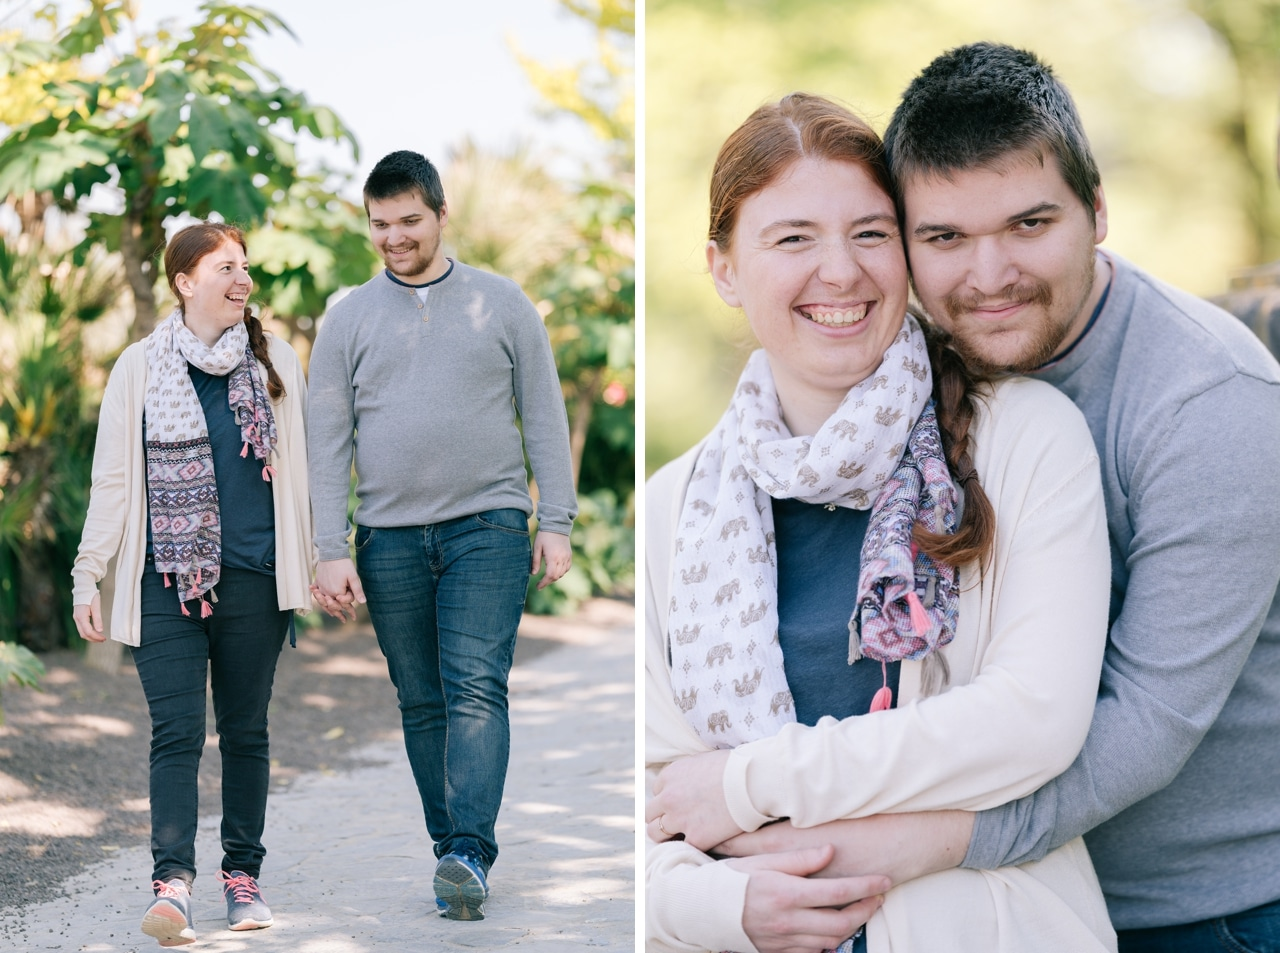 photographe-engagement-pairi-daiza-belgique-34